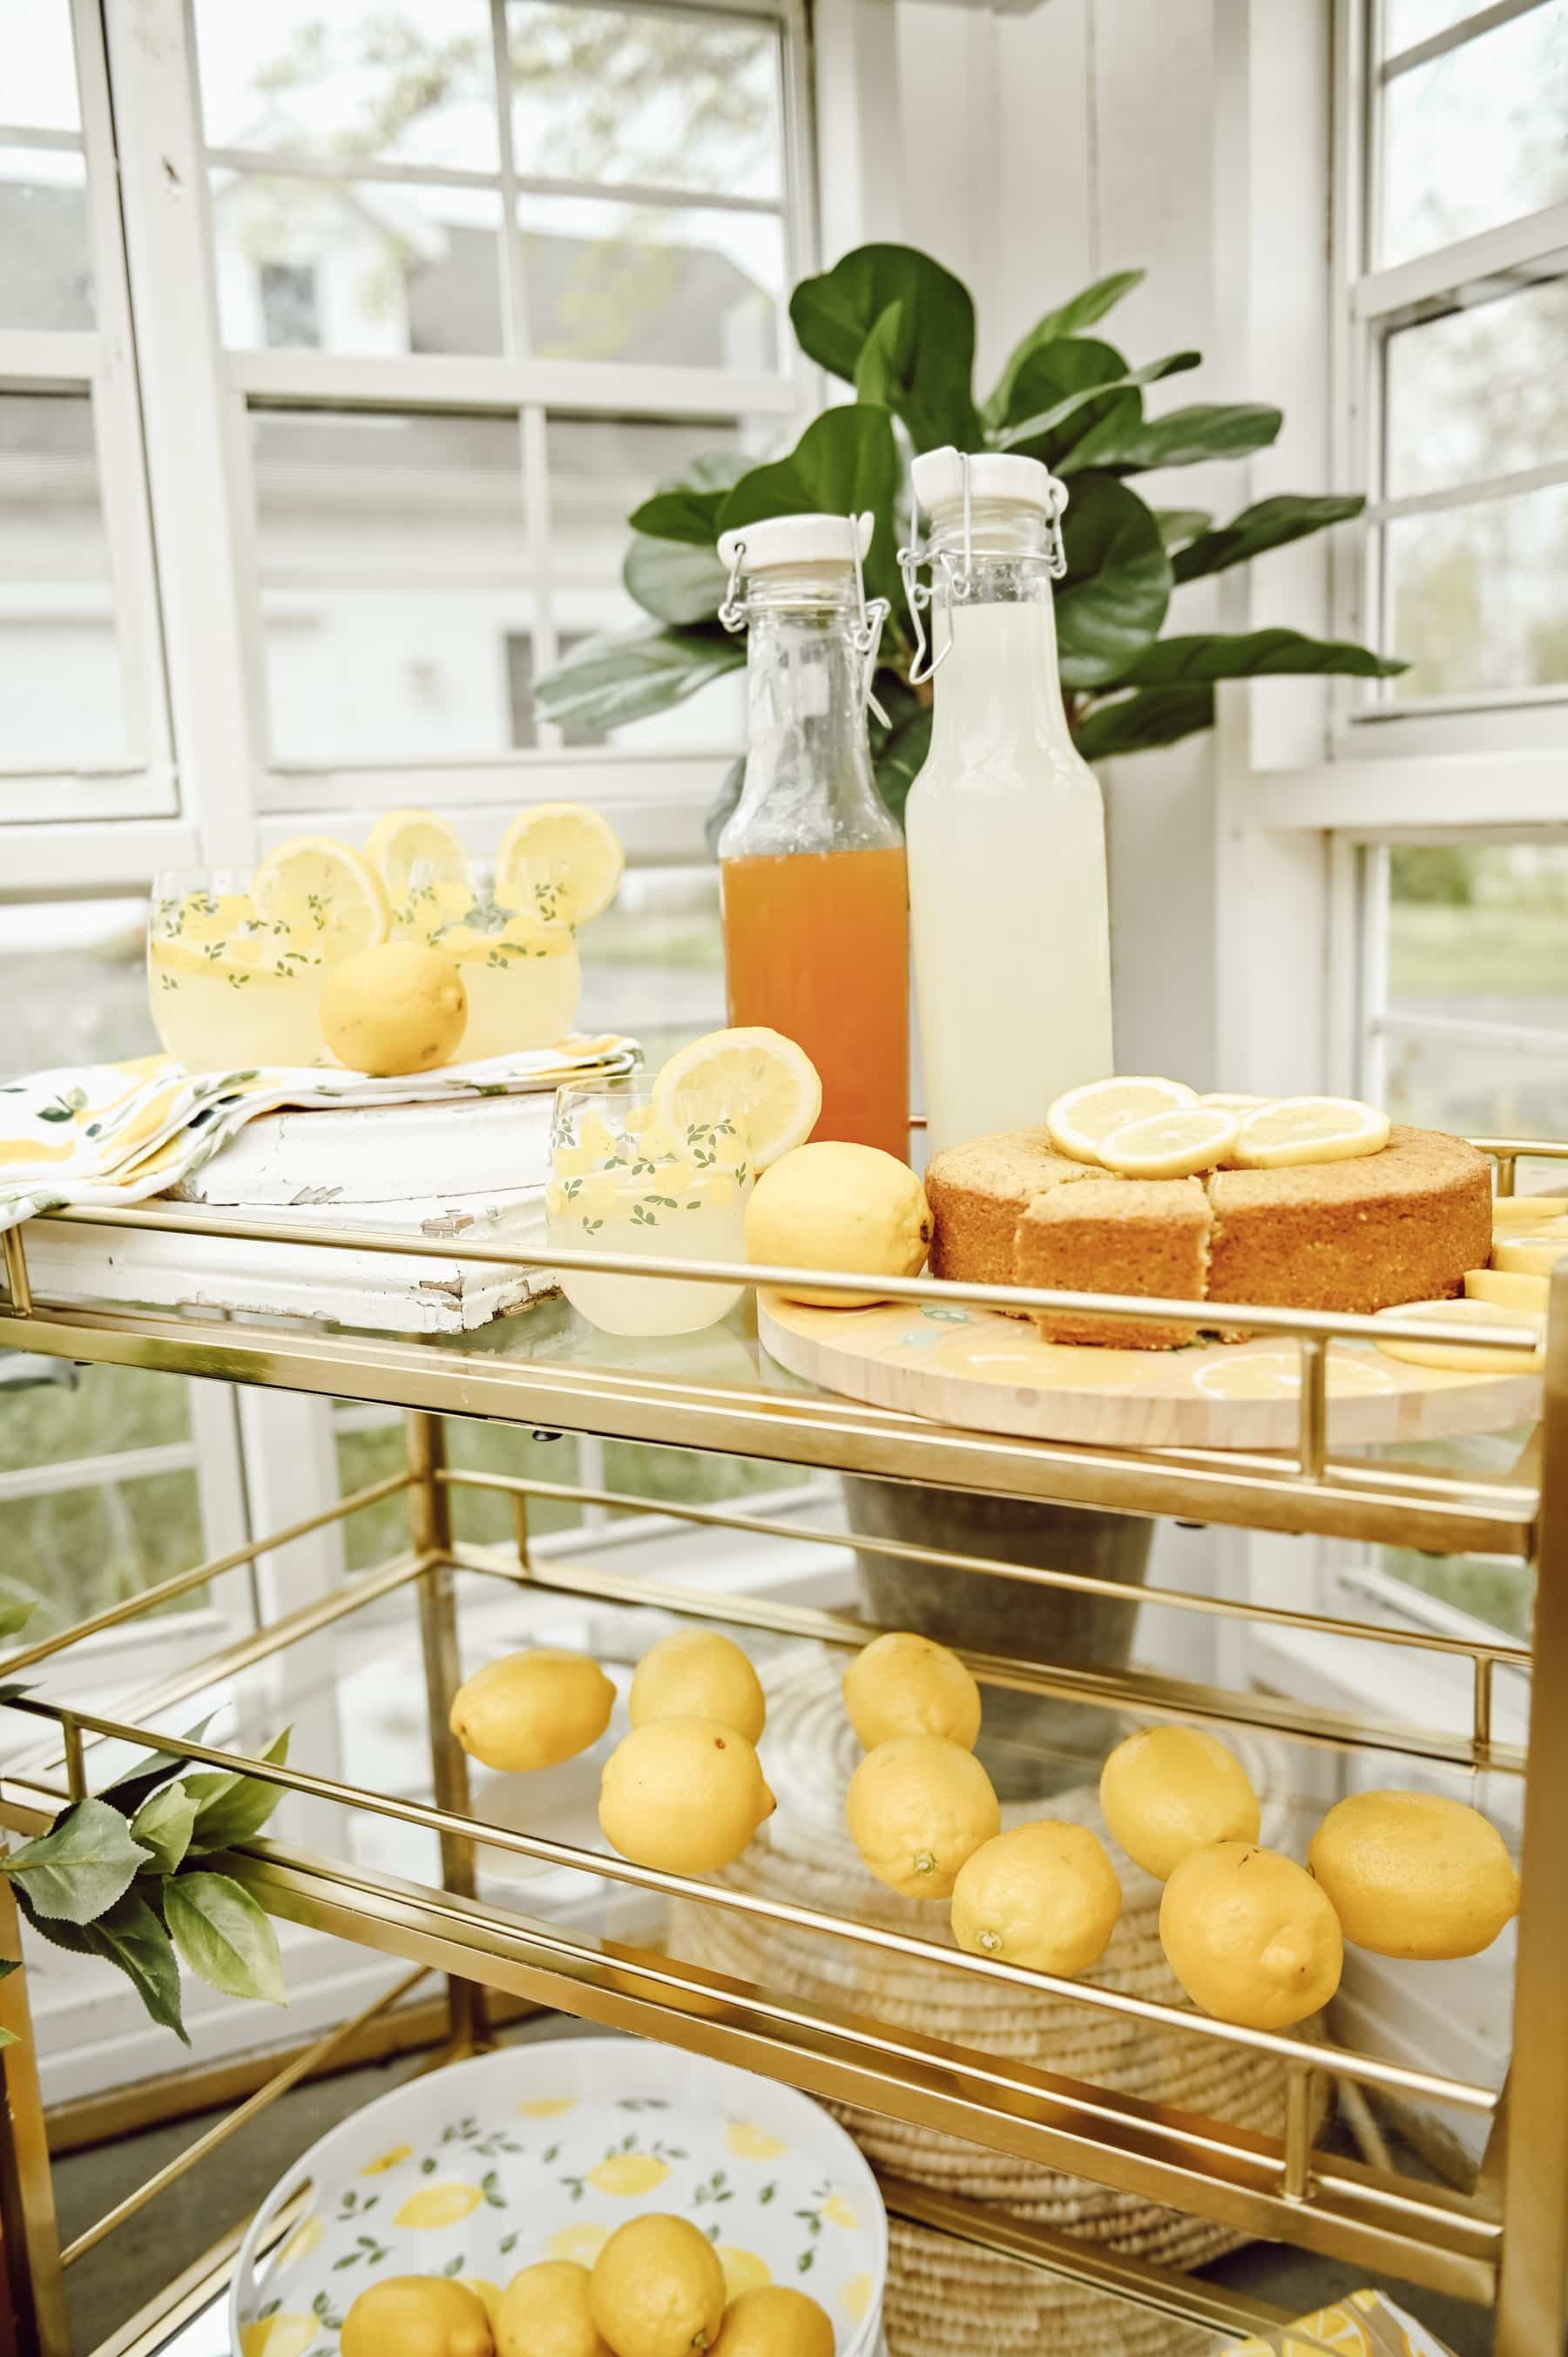 Homemade Lemon Drinks and pound cake on drink cart in greenhouse